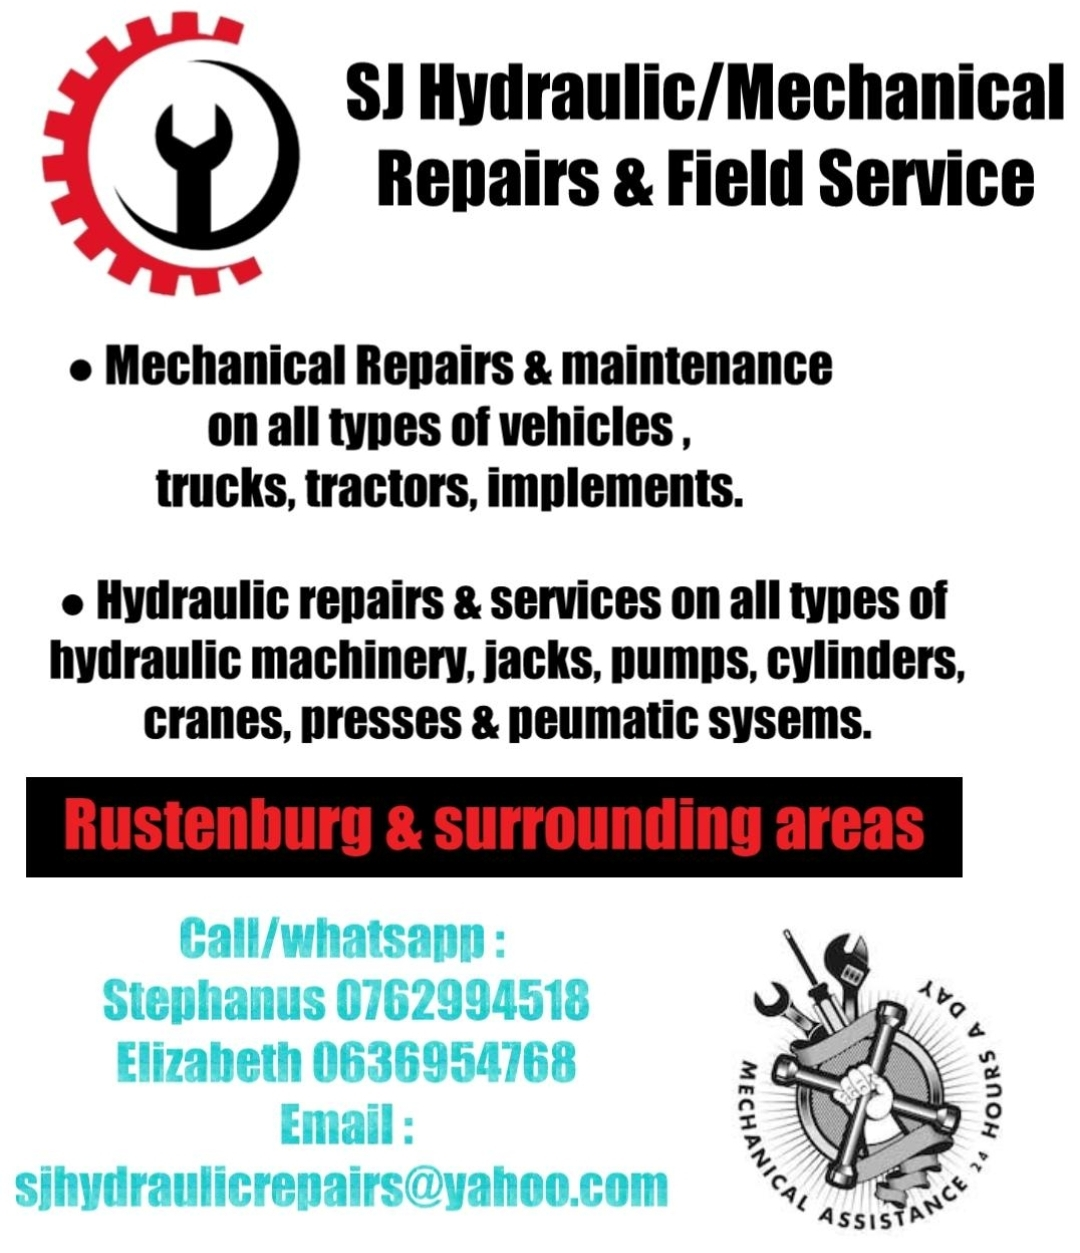 Repairs & maintenance on all types of hydraulic/pneumatic systems